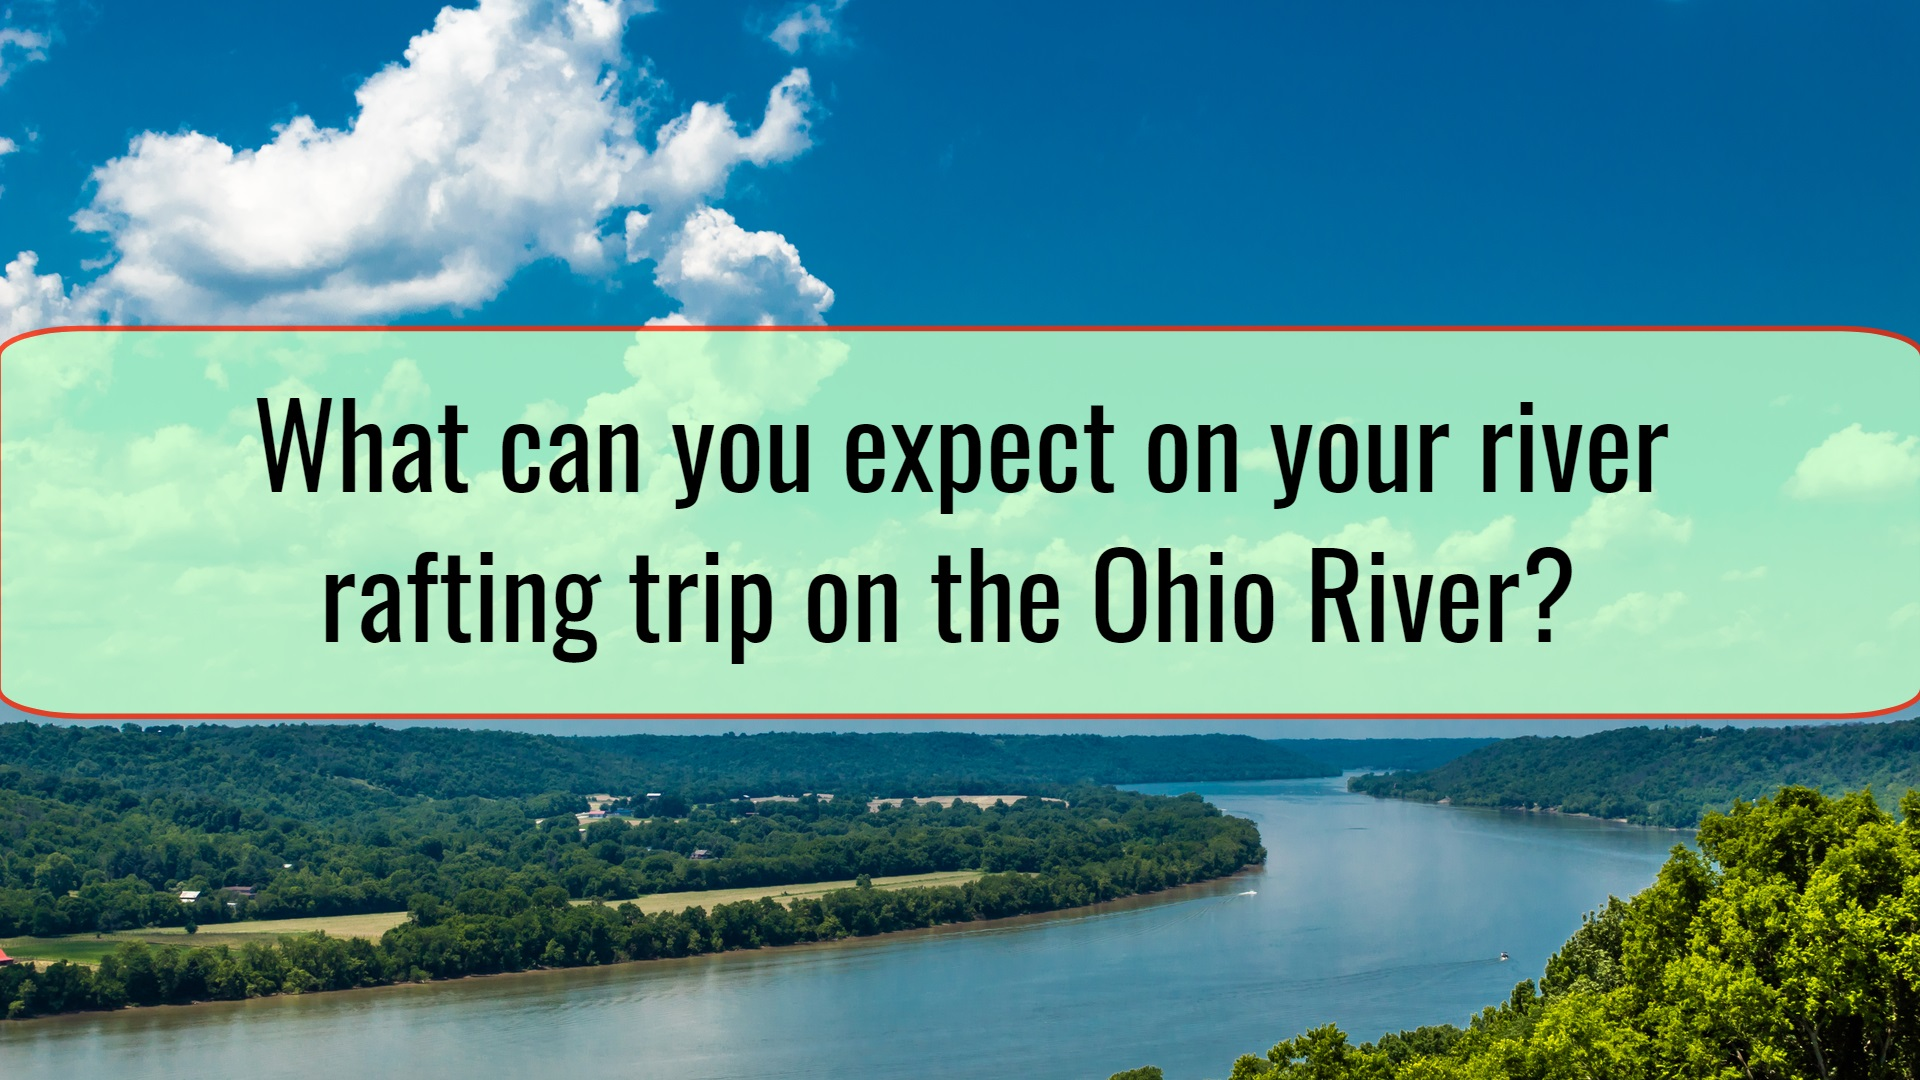 What can you expect on your river rafting trip on the Ohio River?